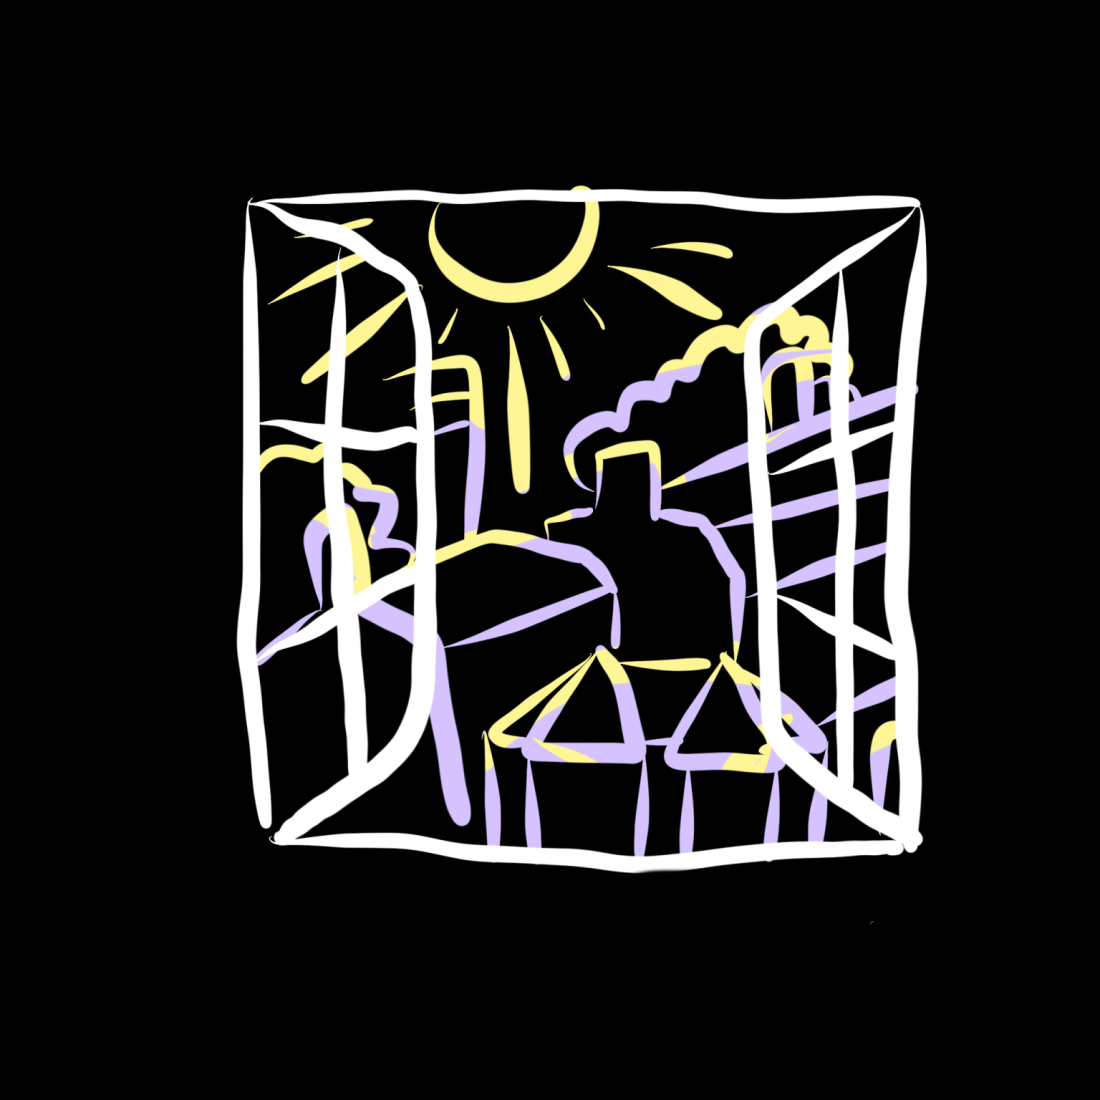 A frame from Aiden's first animation from their 'Visual Snow' piece